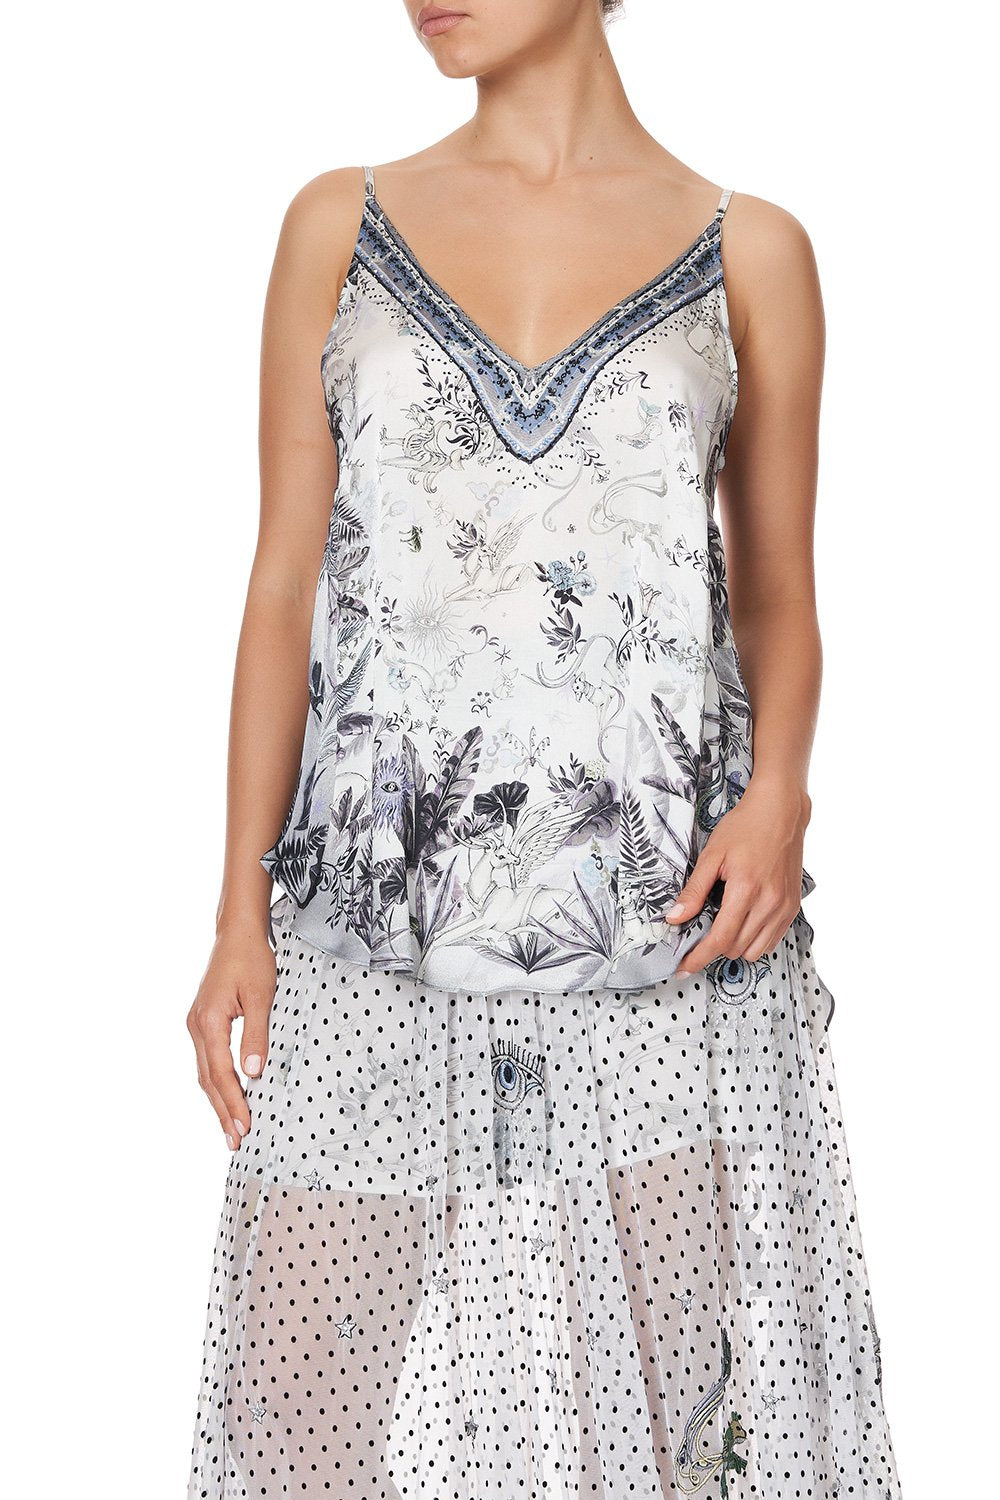 V NECK CAMI MOONLIT MUSINGS